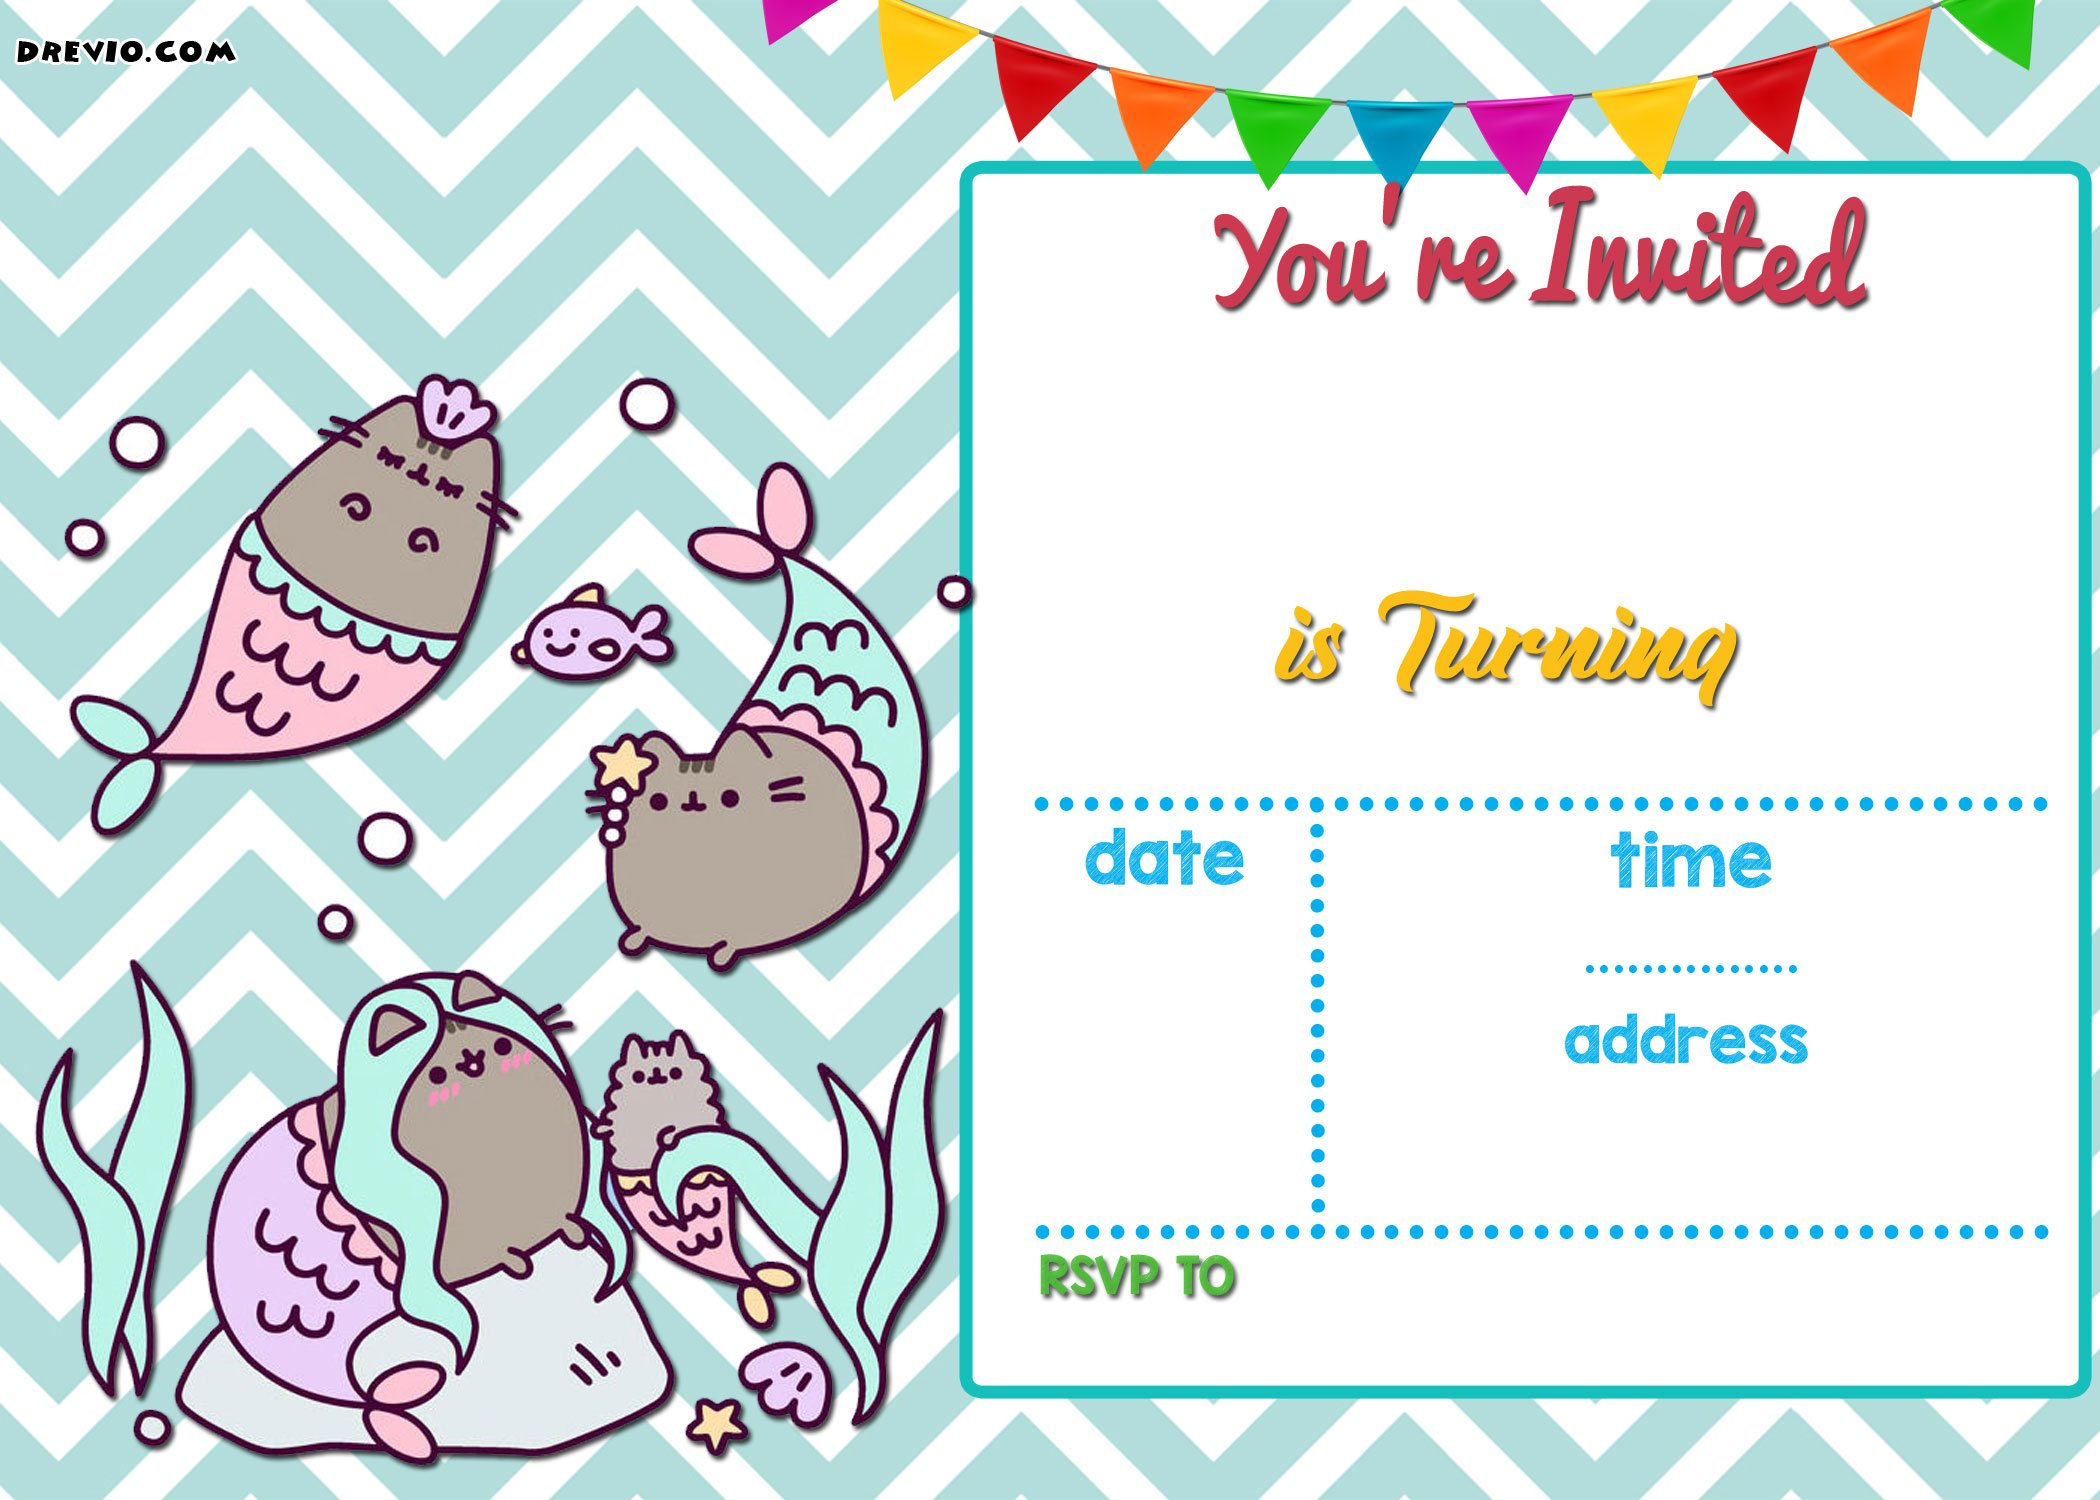 FREE Mermaid Pusheen Invitation Templates | Drevio ...